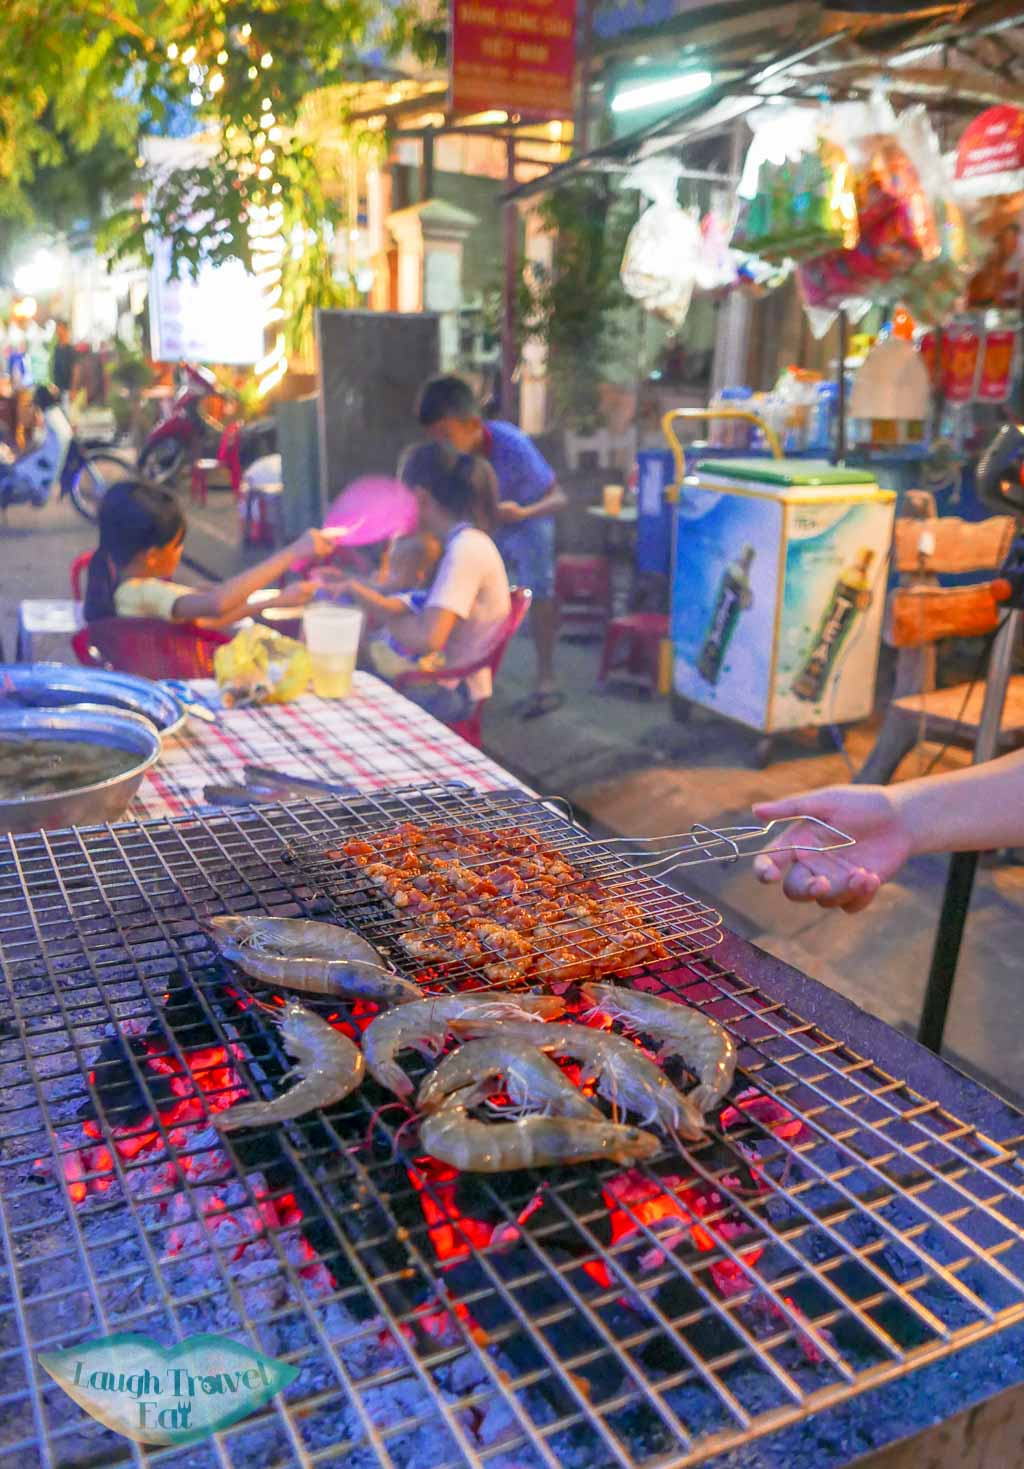 seafood grill red gecko restaurant, Hoi An, Vietnam - Laugh Travel Eat